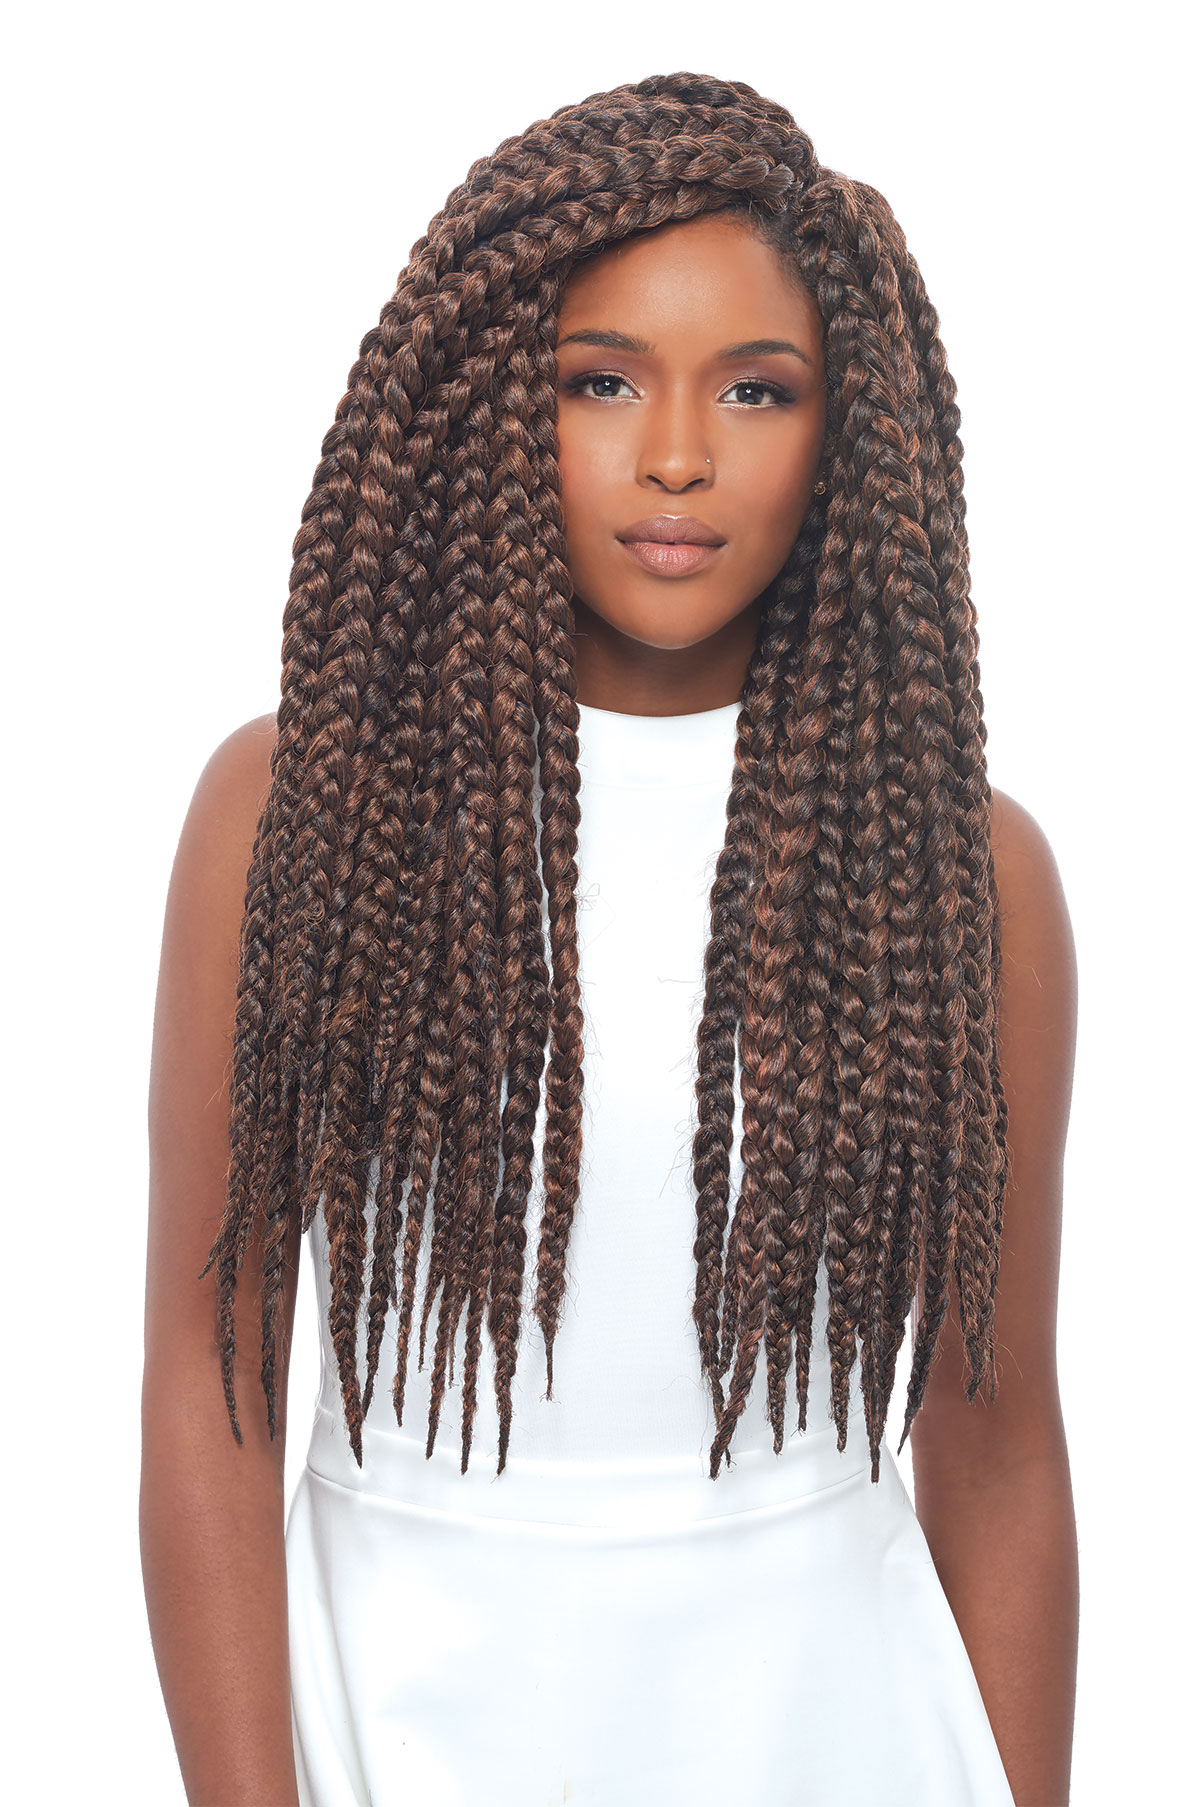 Crochet Hair Ebay : ... BRAID 24 - JANET COLLECTION SYNTHETIC CROCHET BRAIDING HAIR eBay